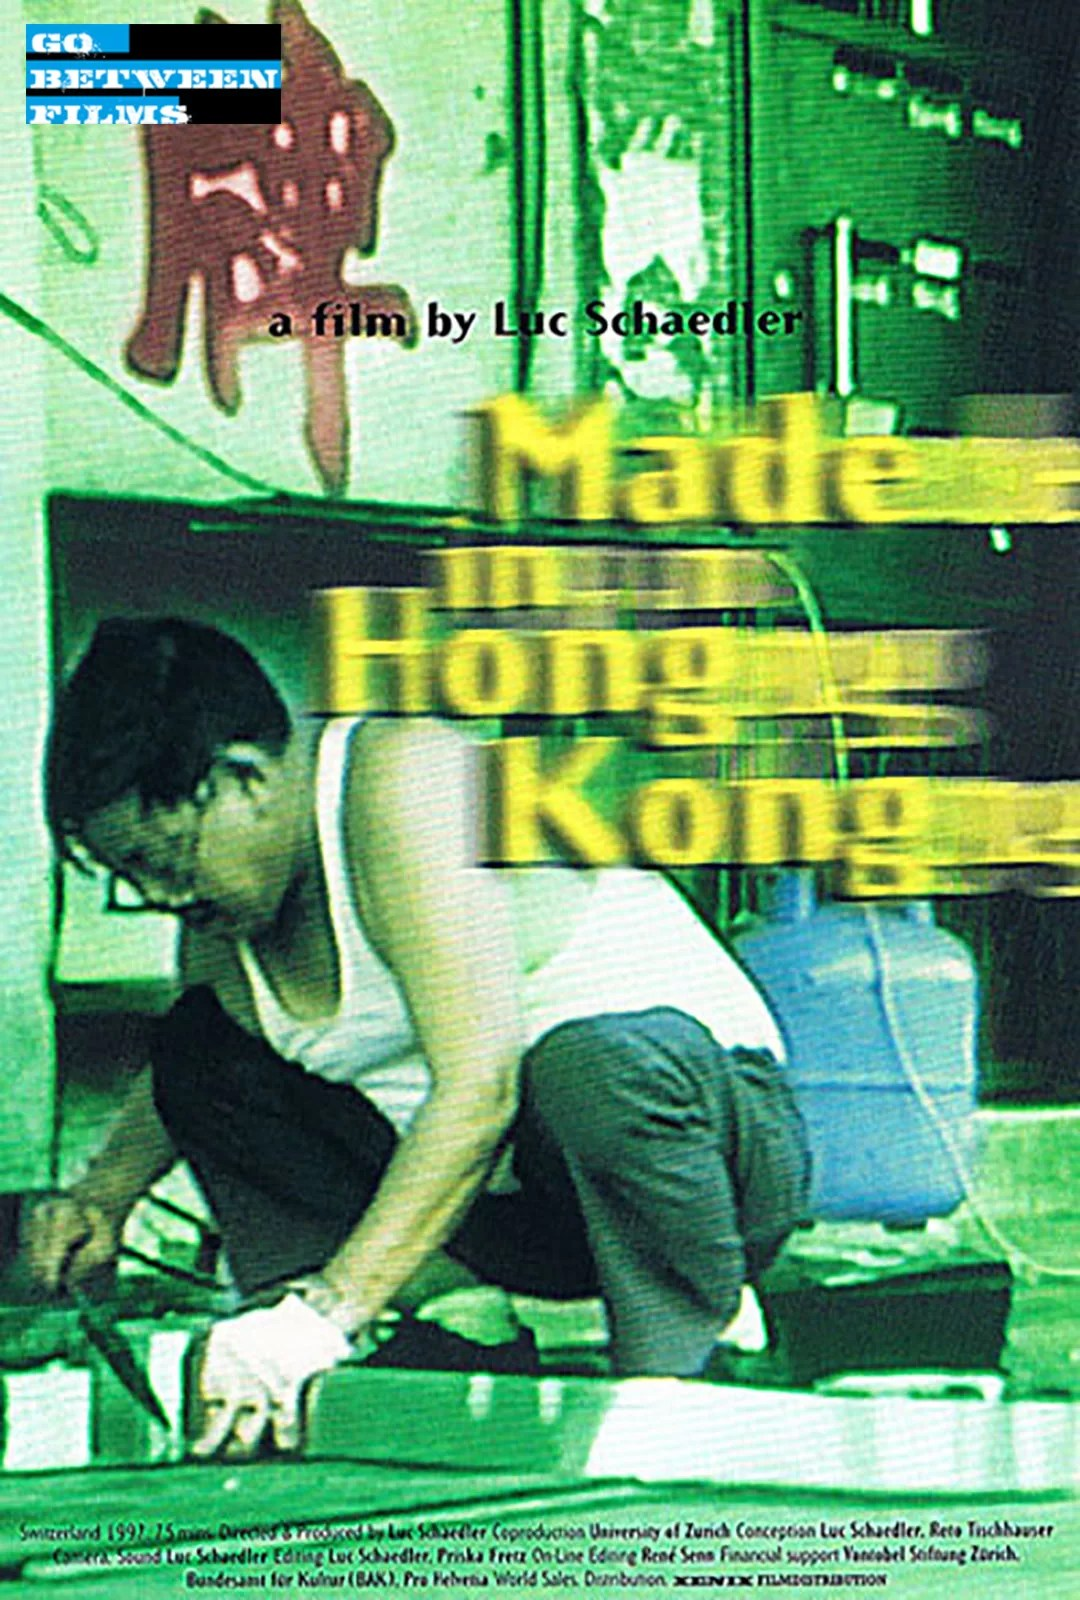 Made in Hong Kong · 1997 - poster - go between films